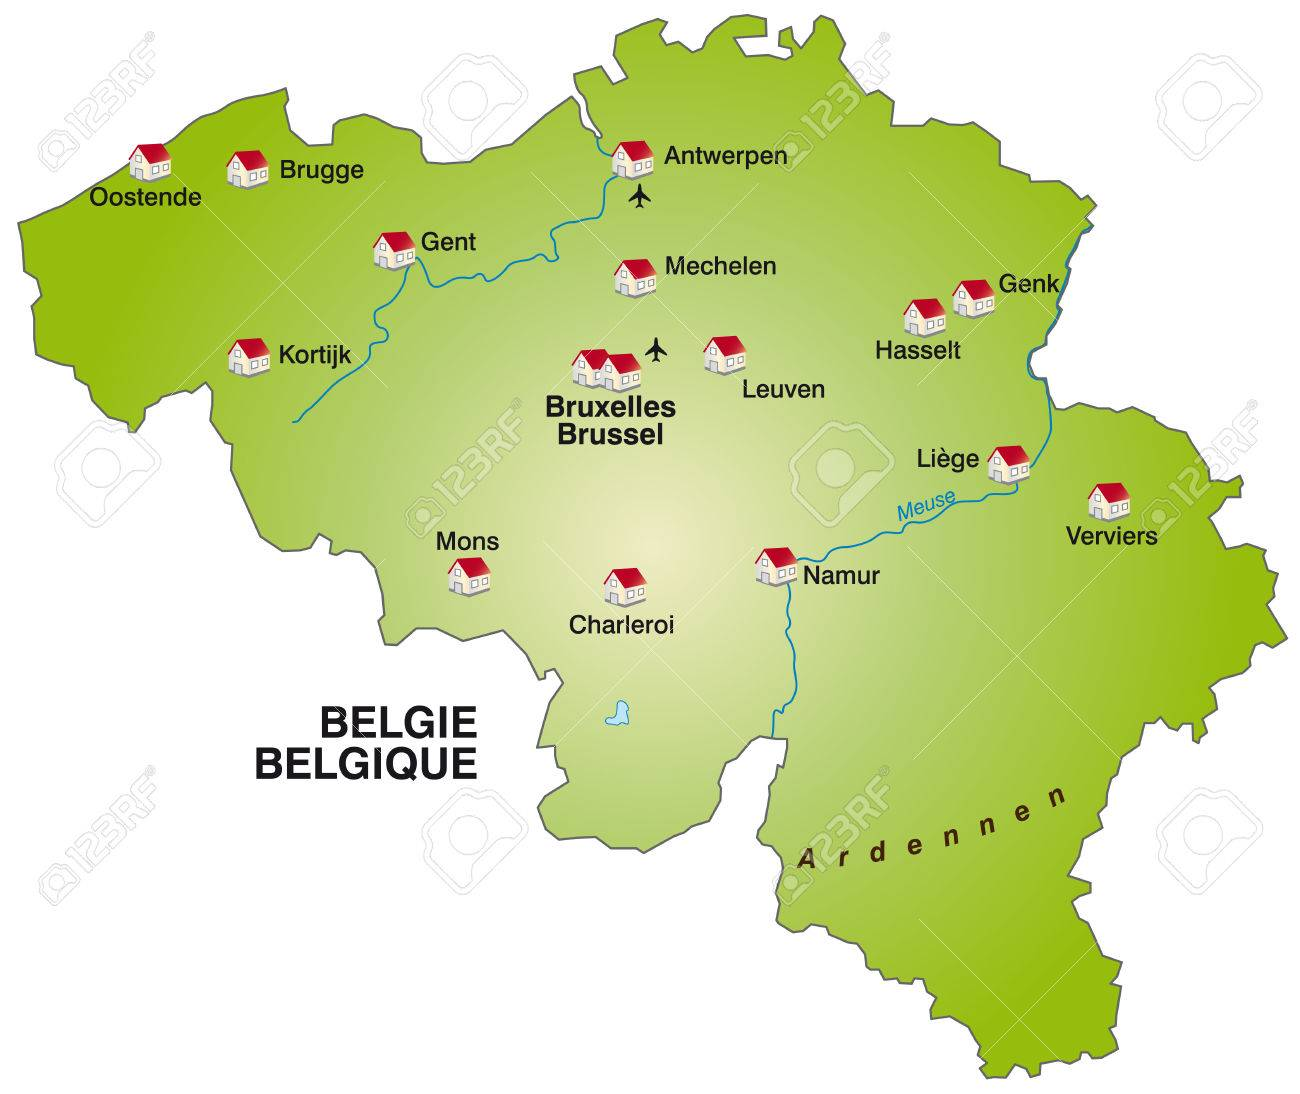 Map Of Belgium As An Infographic In Green Royalty Free Cliparts